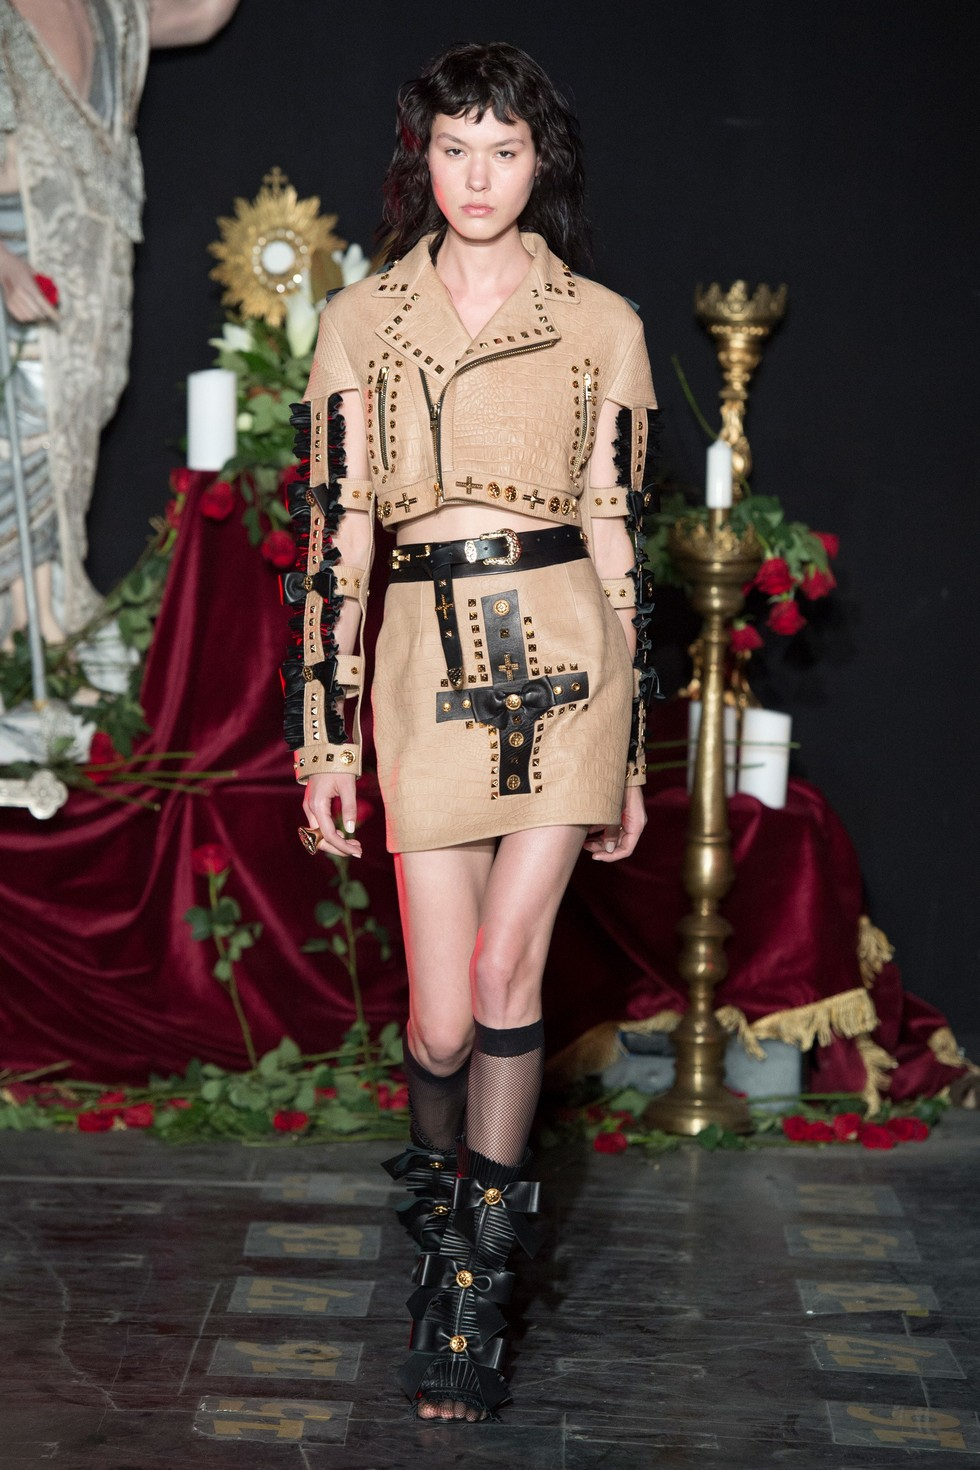 Fausto Puglisi milan fashion spring summer 2017 milan fashion spring summer 2017 Milan Fashion Spring Summer 2017 – day one best moments Fausto Puglisi 2